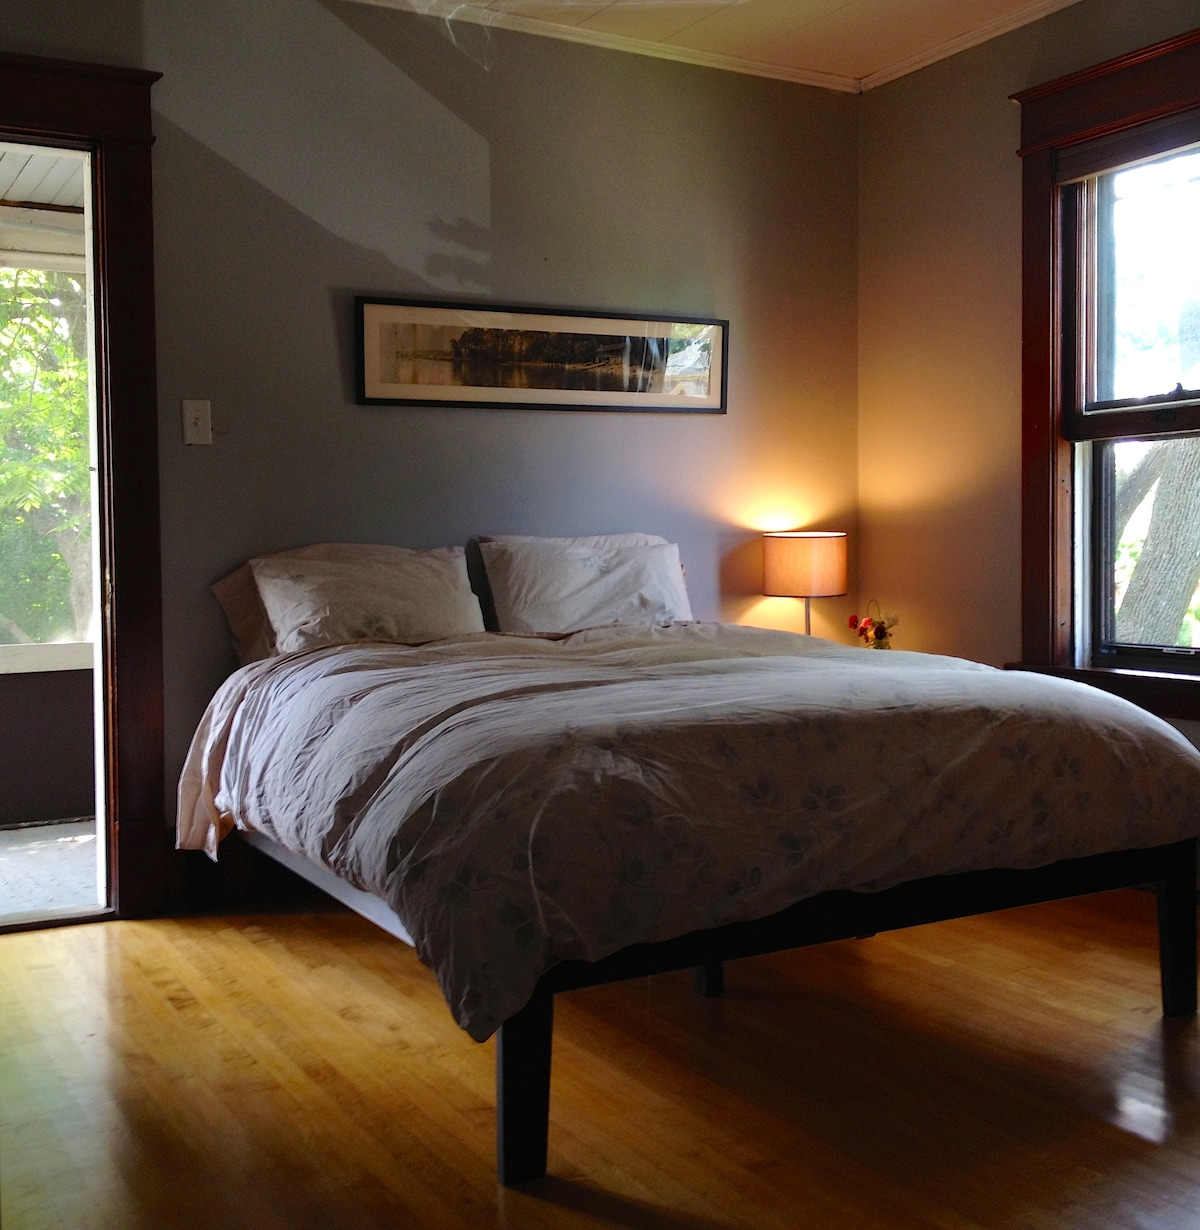 Lovely room centrally located